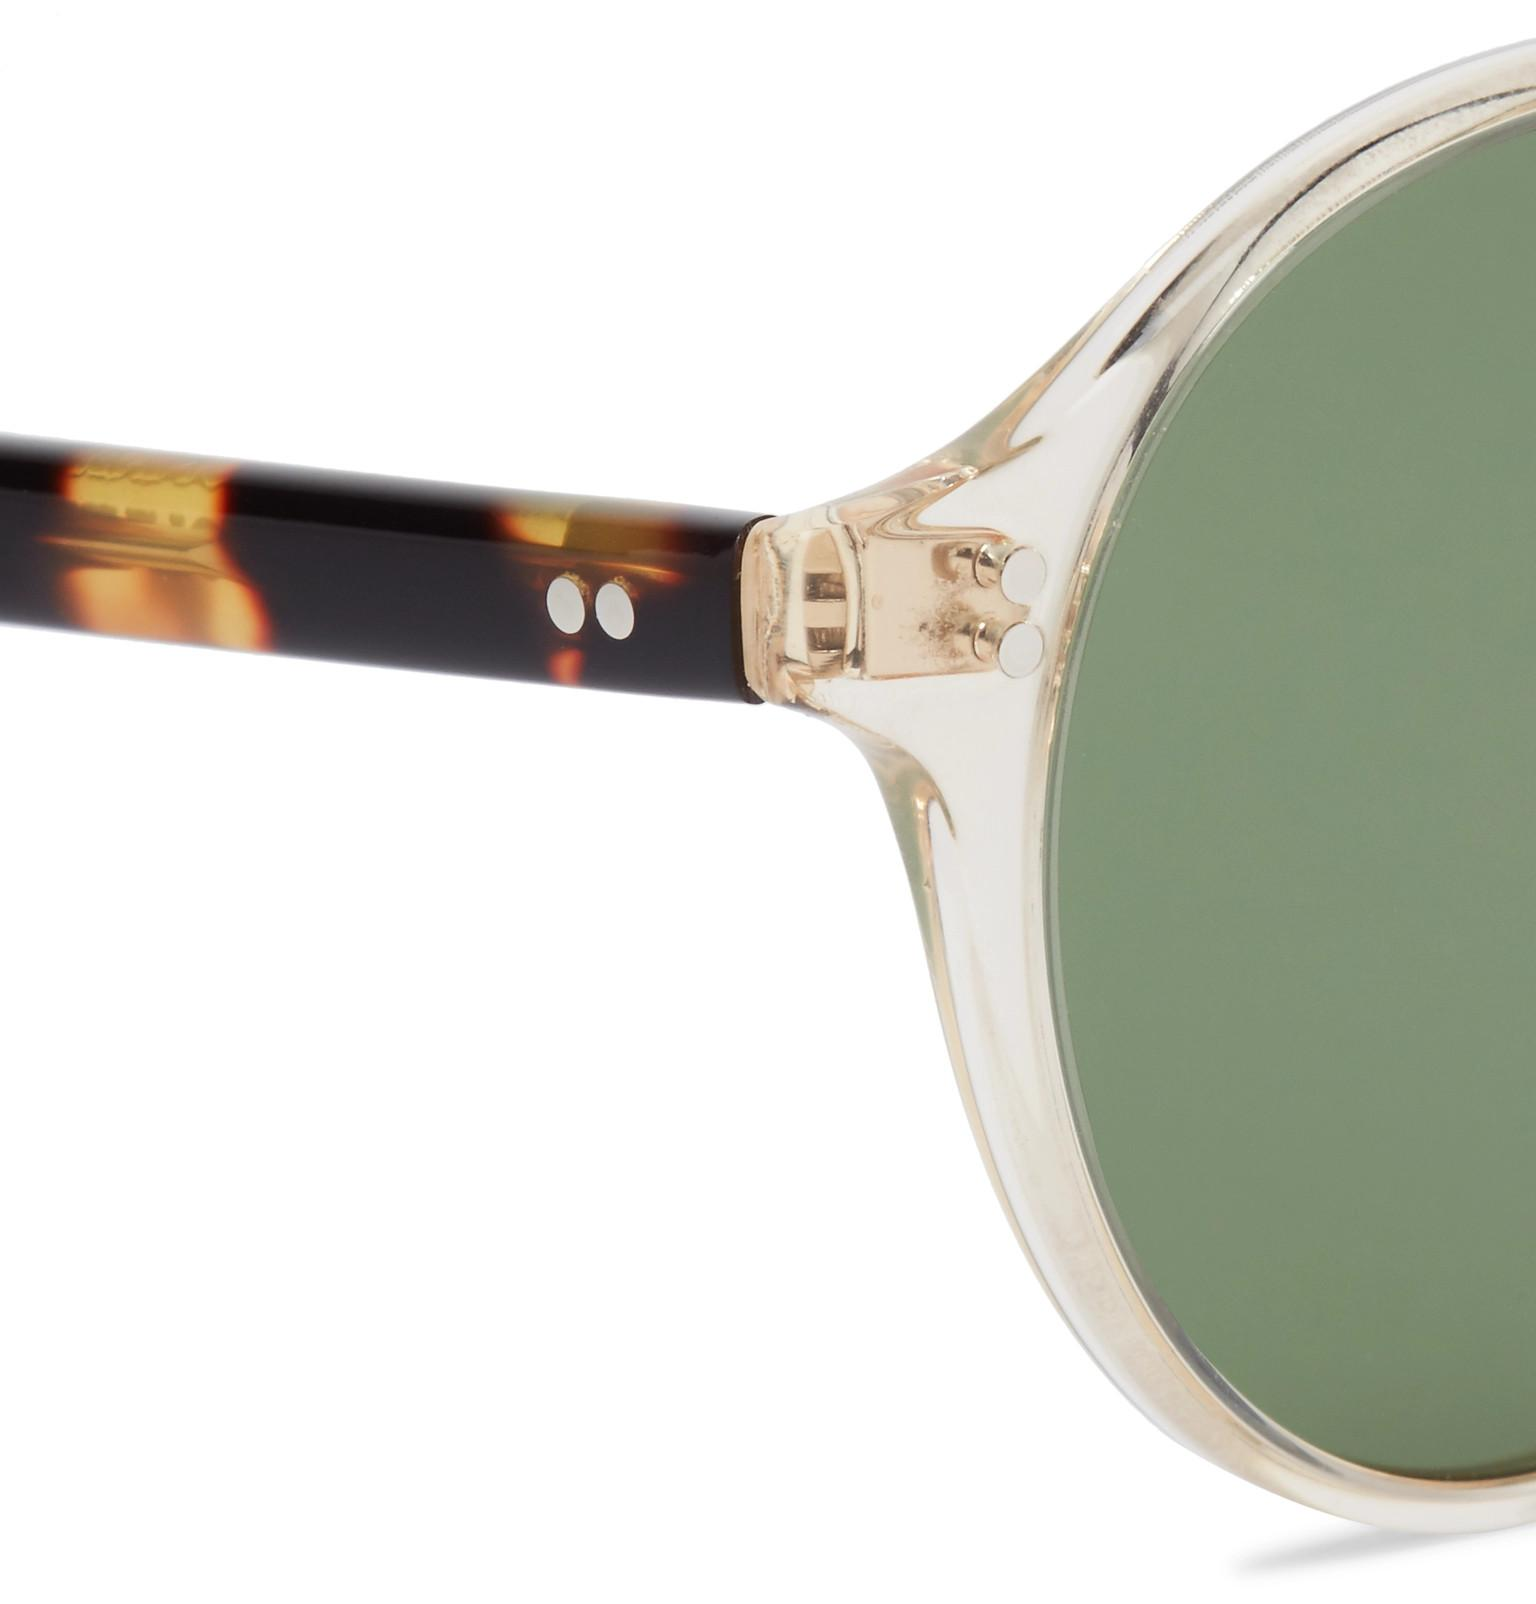 1ebf0eee6b9 Oliver Peoples Op-1955 Round-frame Clear And Tortoiseshell Acetate ...